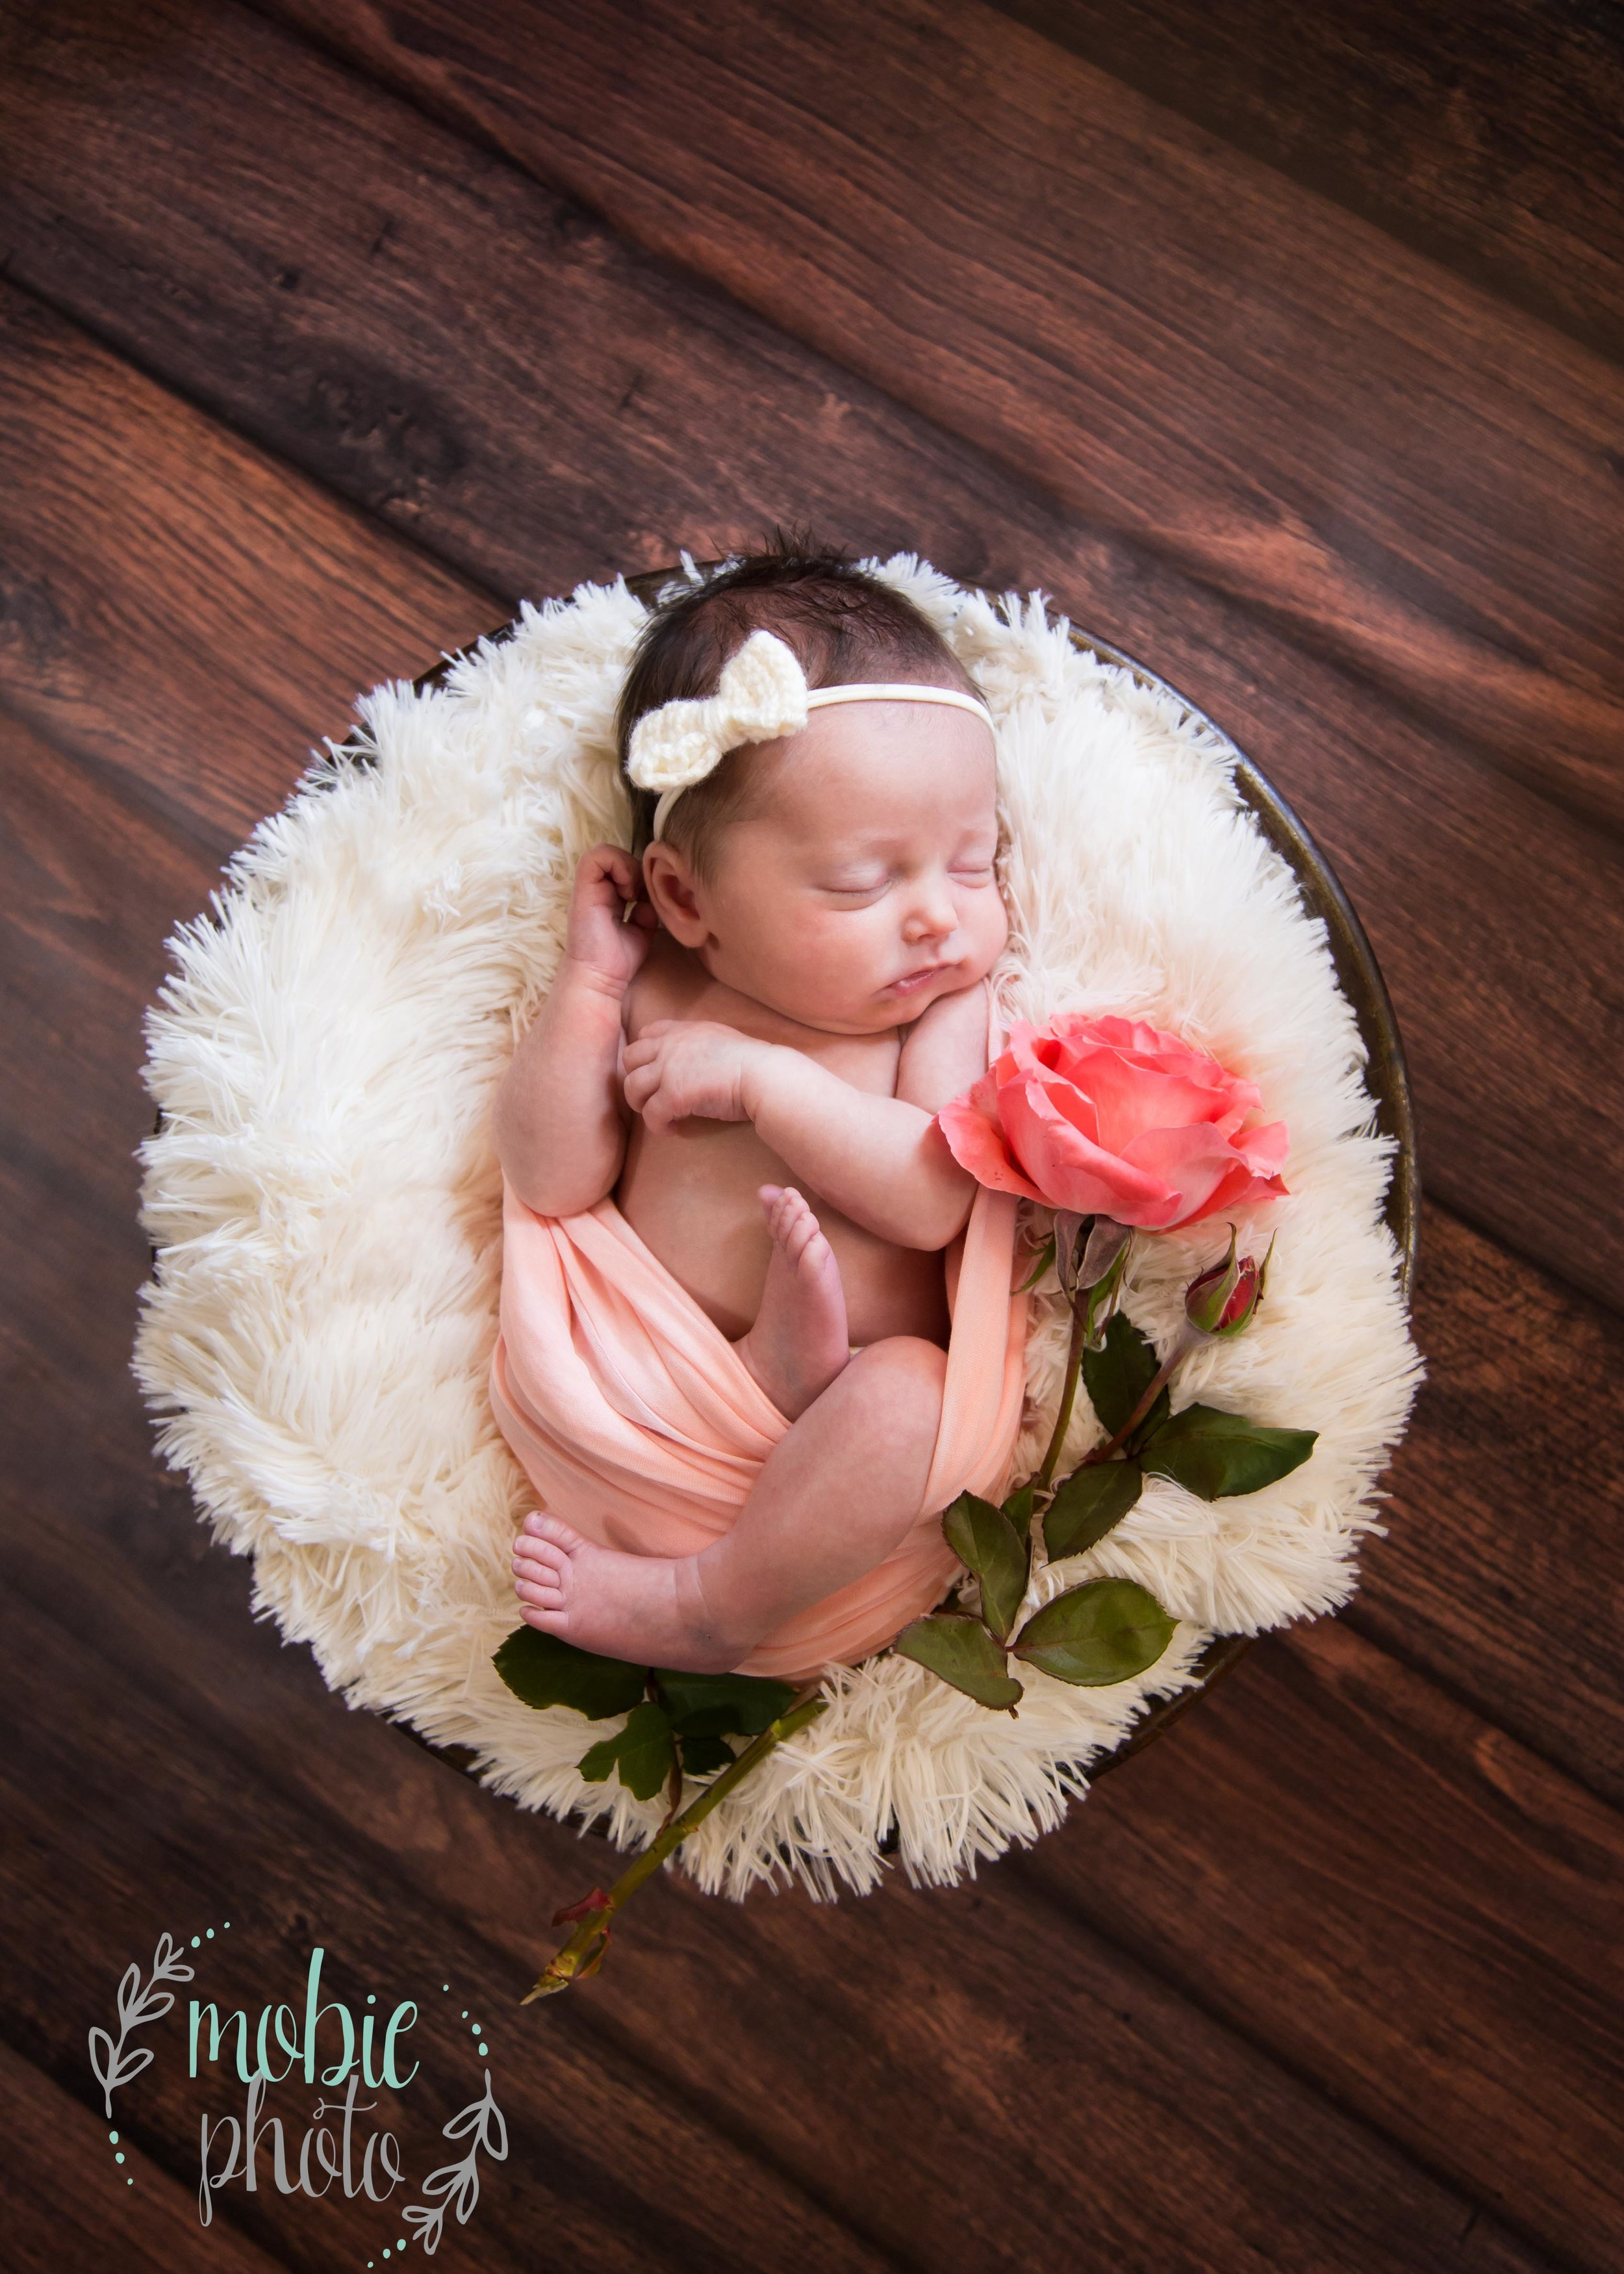 Newborn Girl in Round Basket with White Fluff, Pink Rose, and Pink Wrap